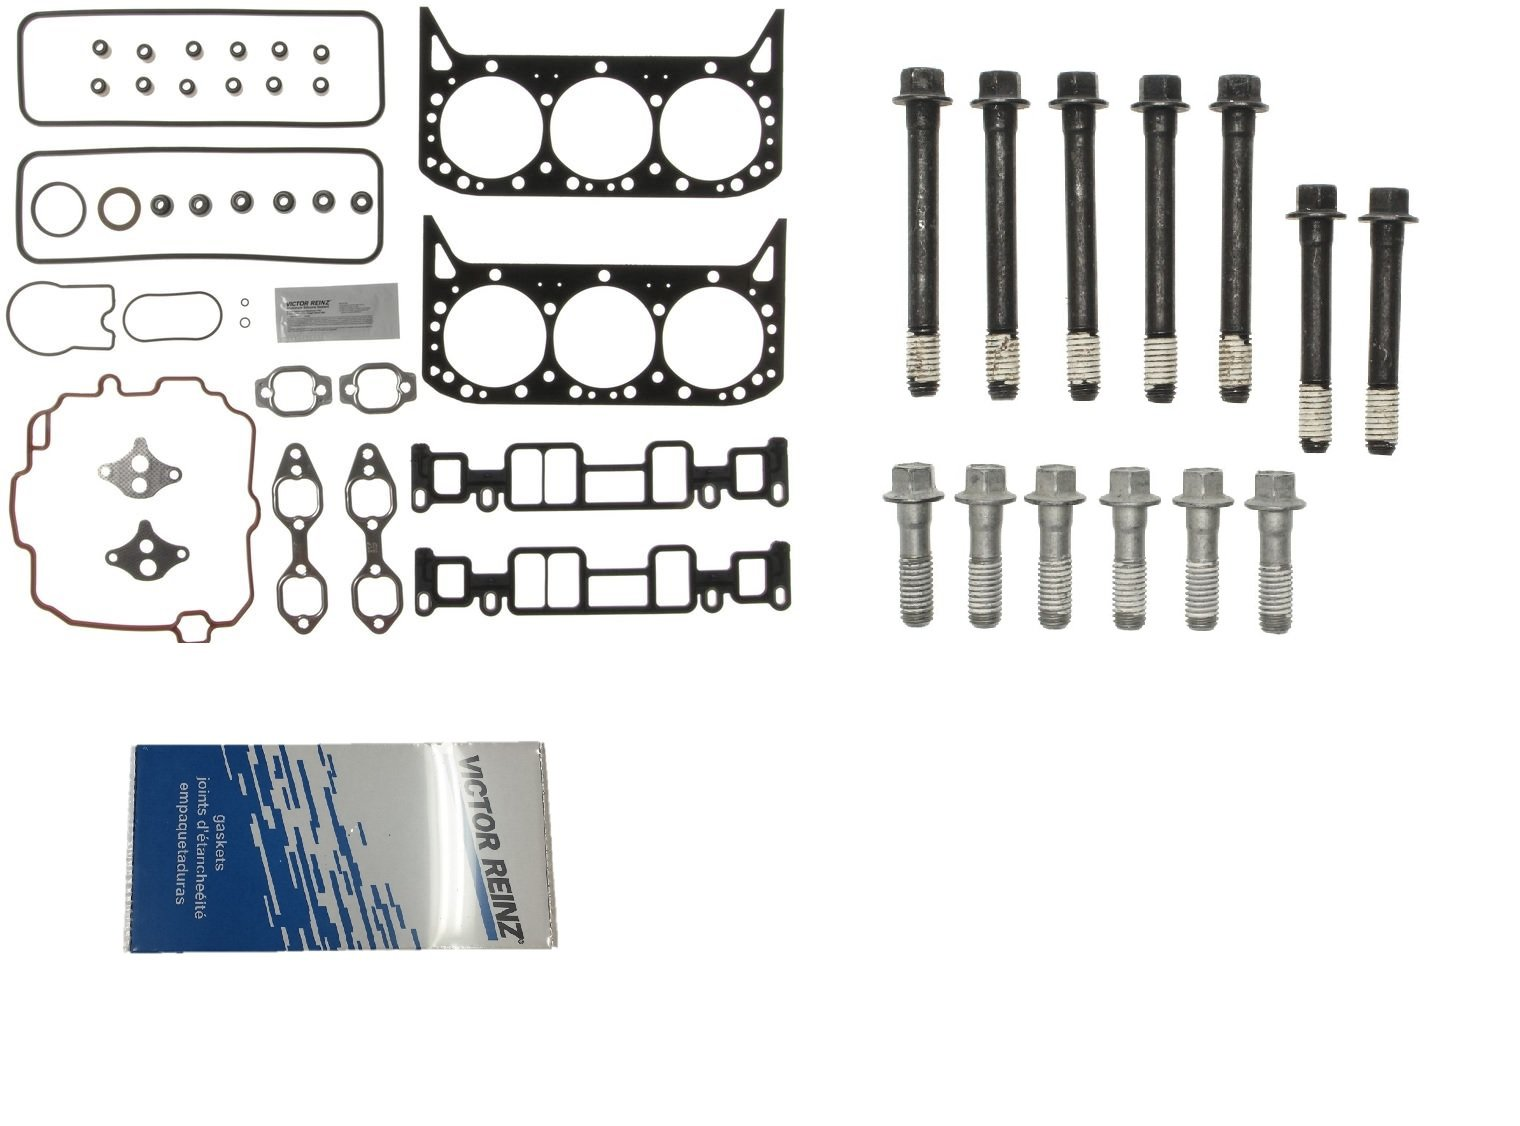 MAHLE Cylinder Head Gasket Set & BOLTS for 1996-2007 Chevy GMC 4.3 VORTEC VIN-''W'' or ''X'' (Upper Gskts & Bolts)